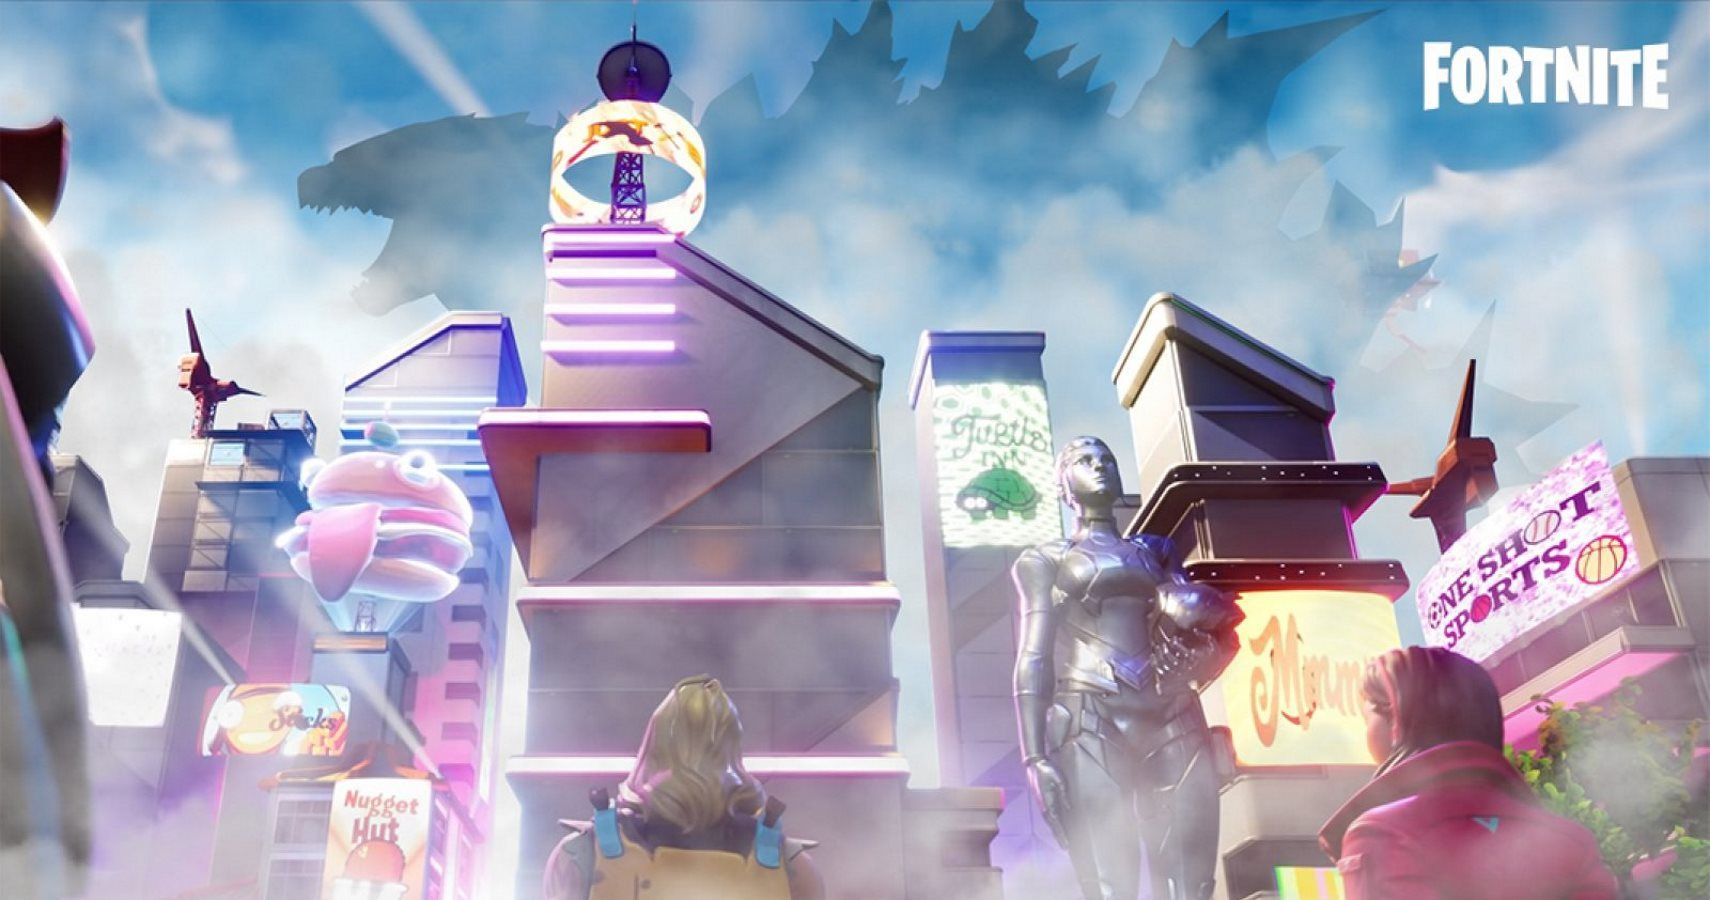 Fortnite Might Be Stealing The Godzilla Event From PUBG